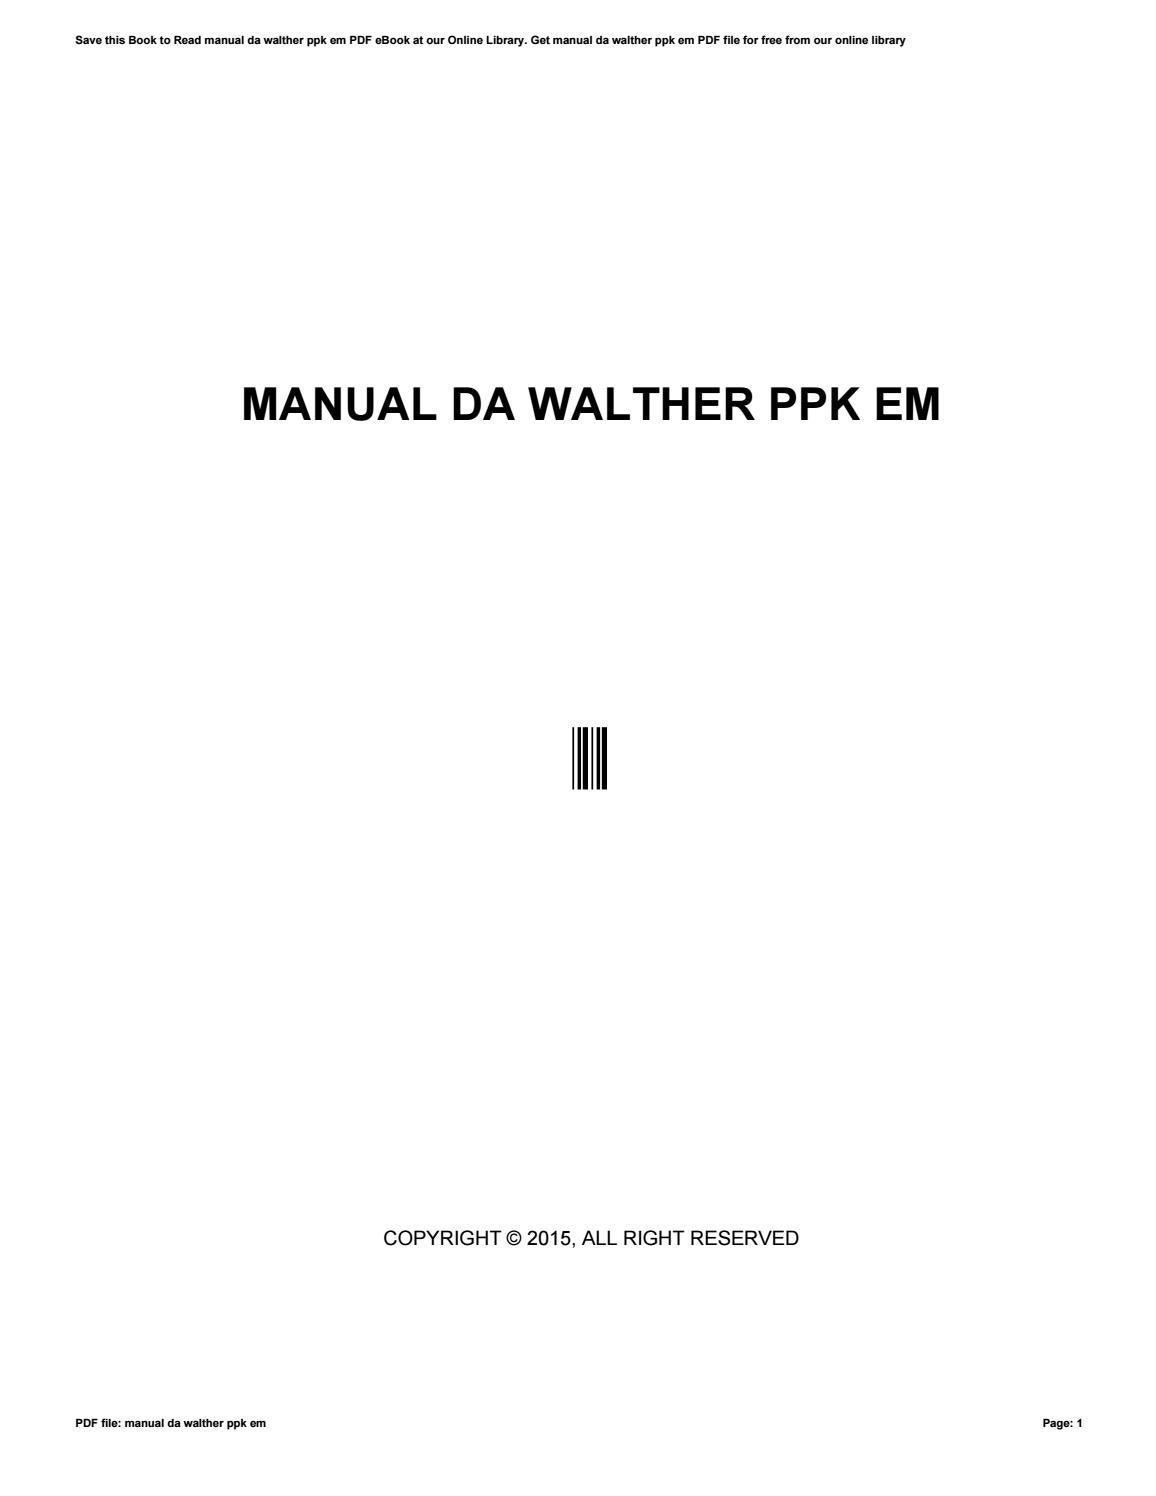 manual da walther ppk em hk 300 parts diagram manual da walther ppk em by mail4510 issuu rh issuu com walther p99 walther ppk silencer